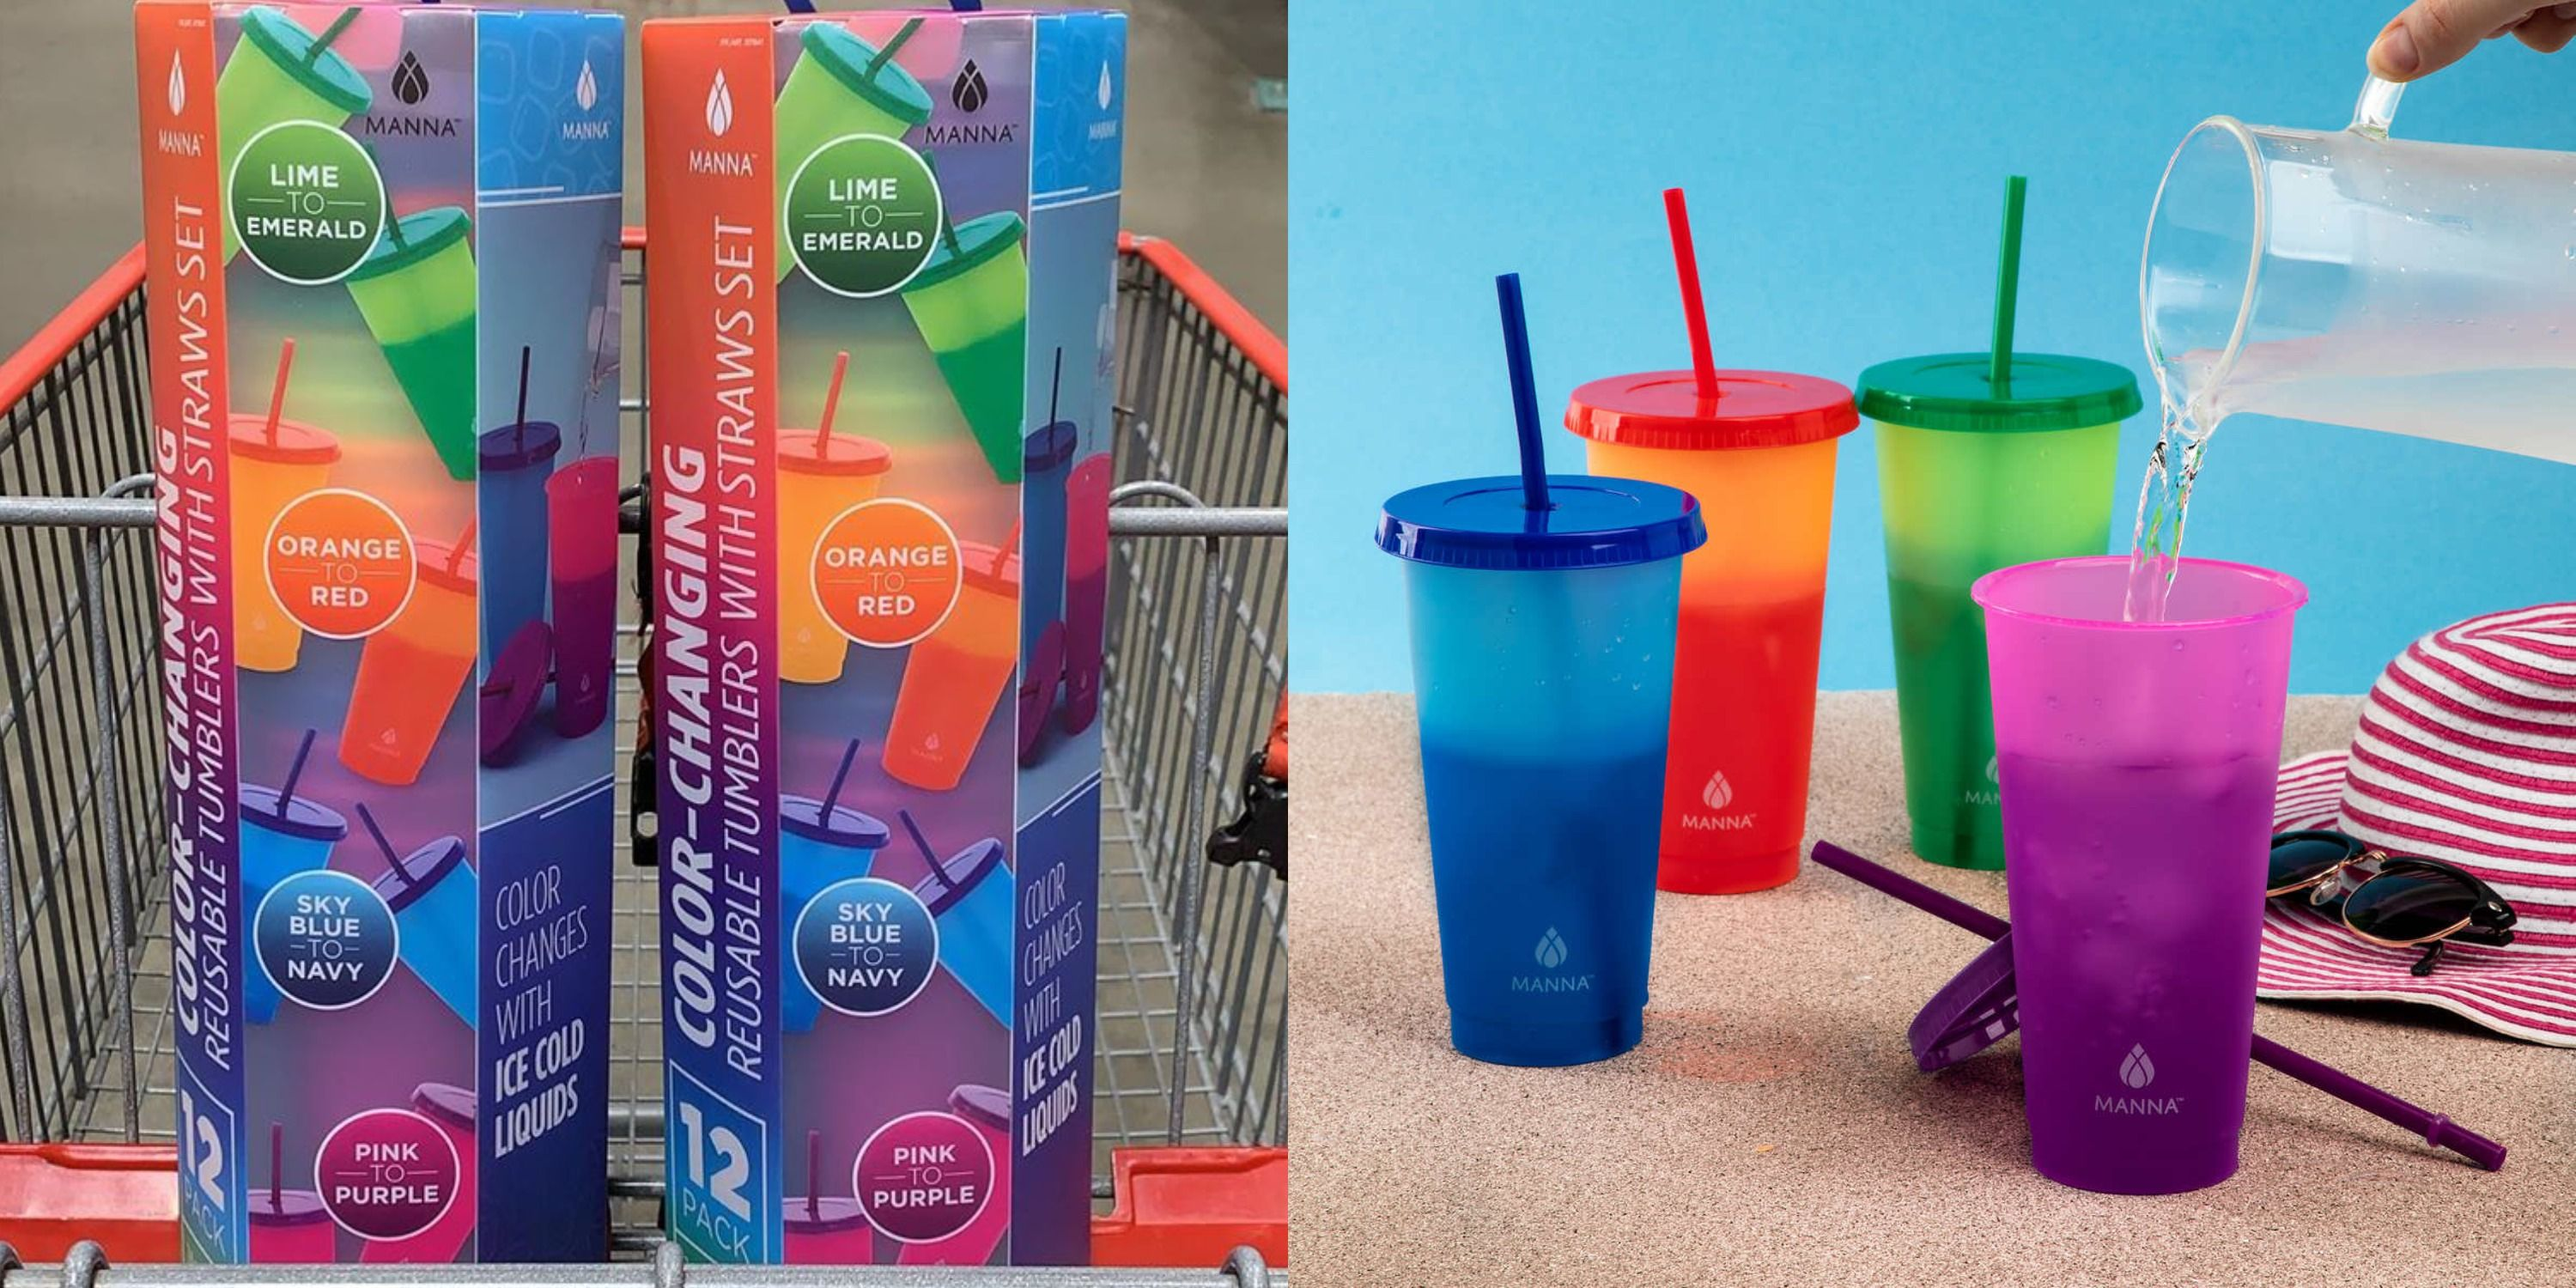 Manna Color Changing Cold Cup Personalized